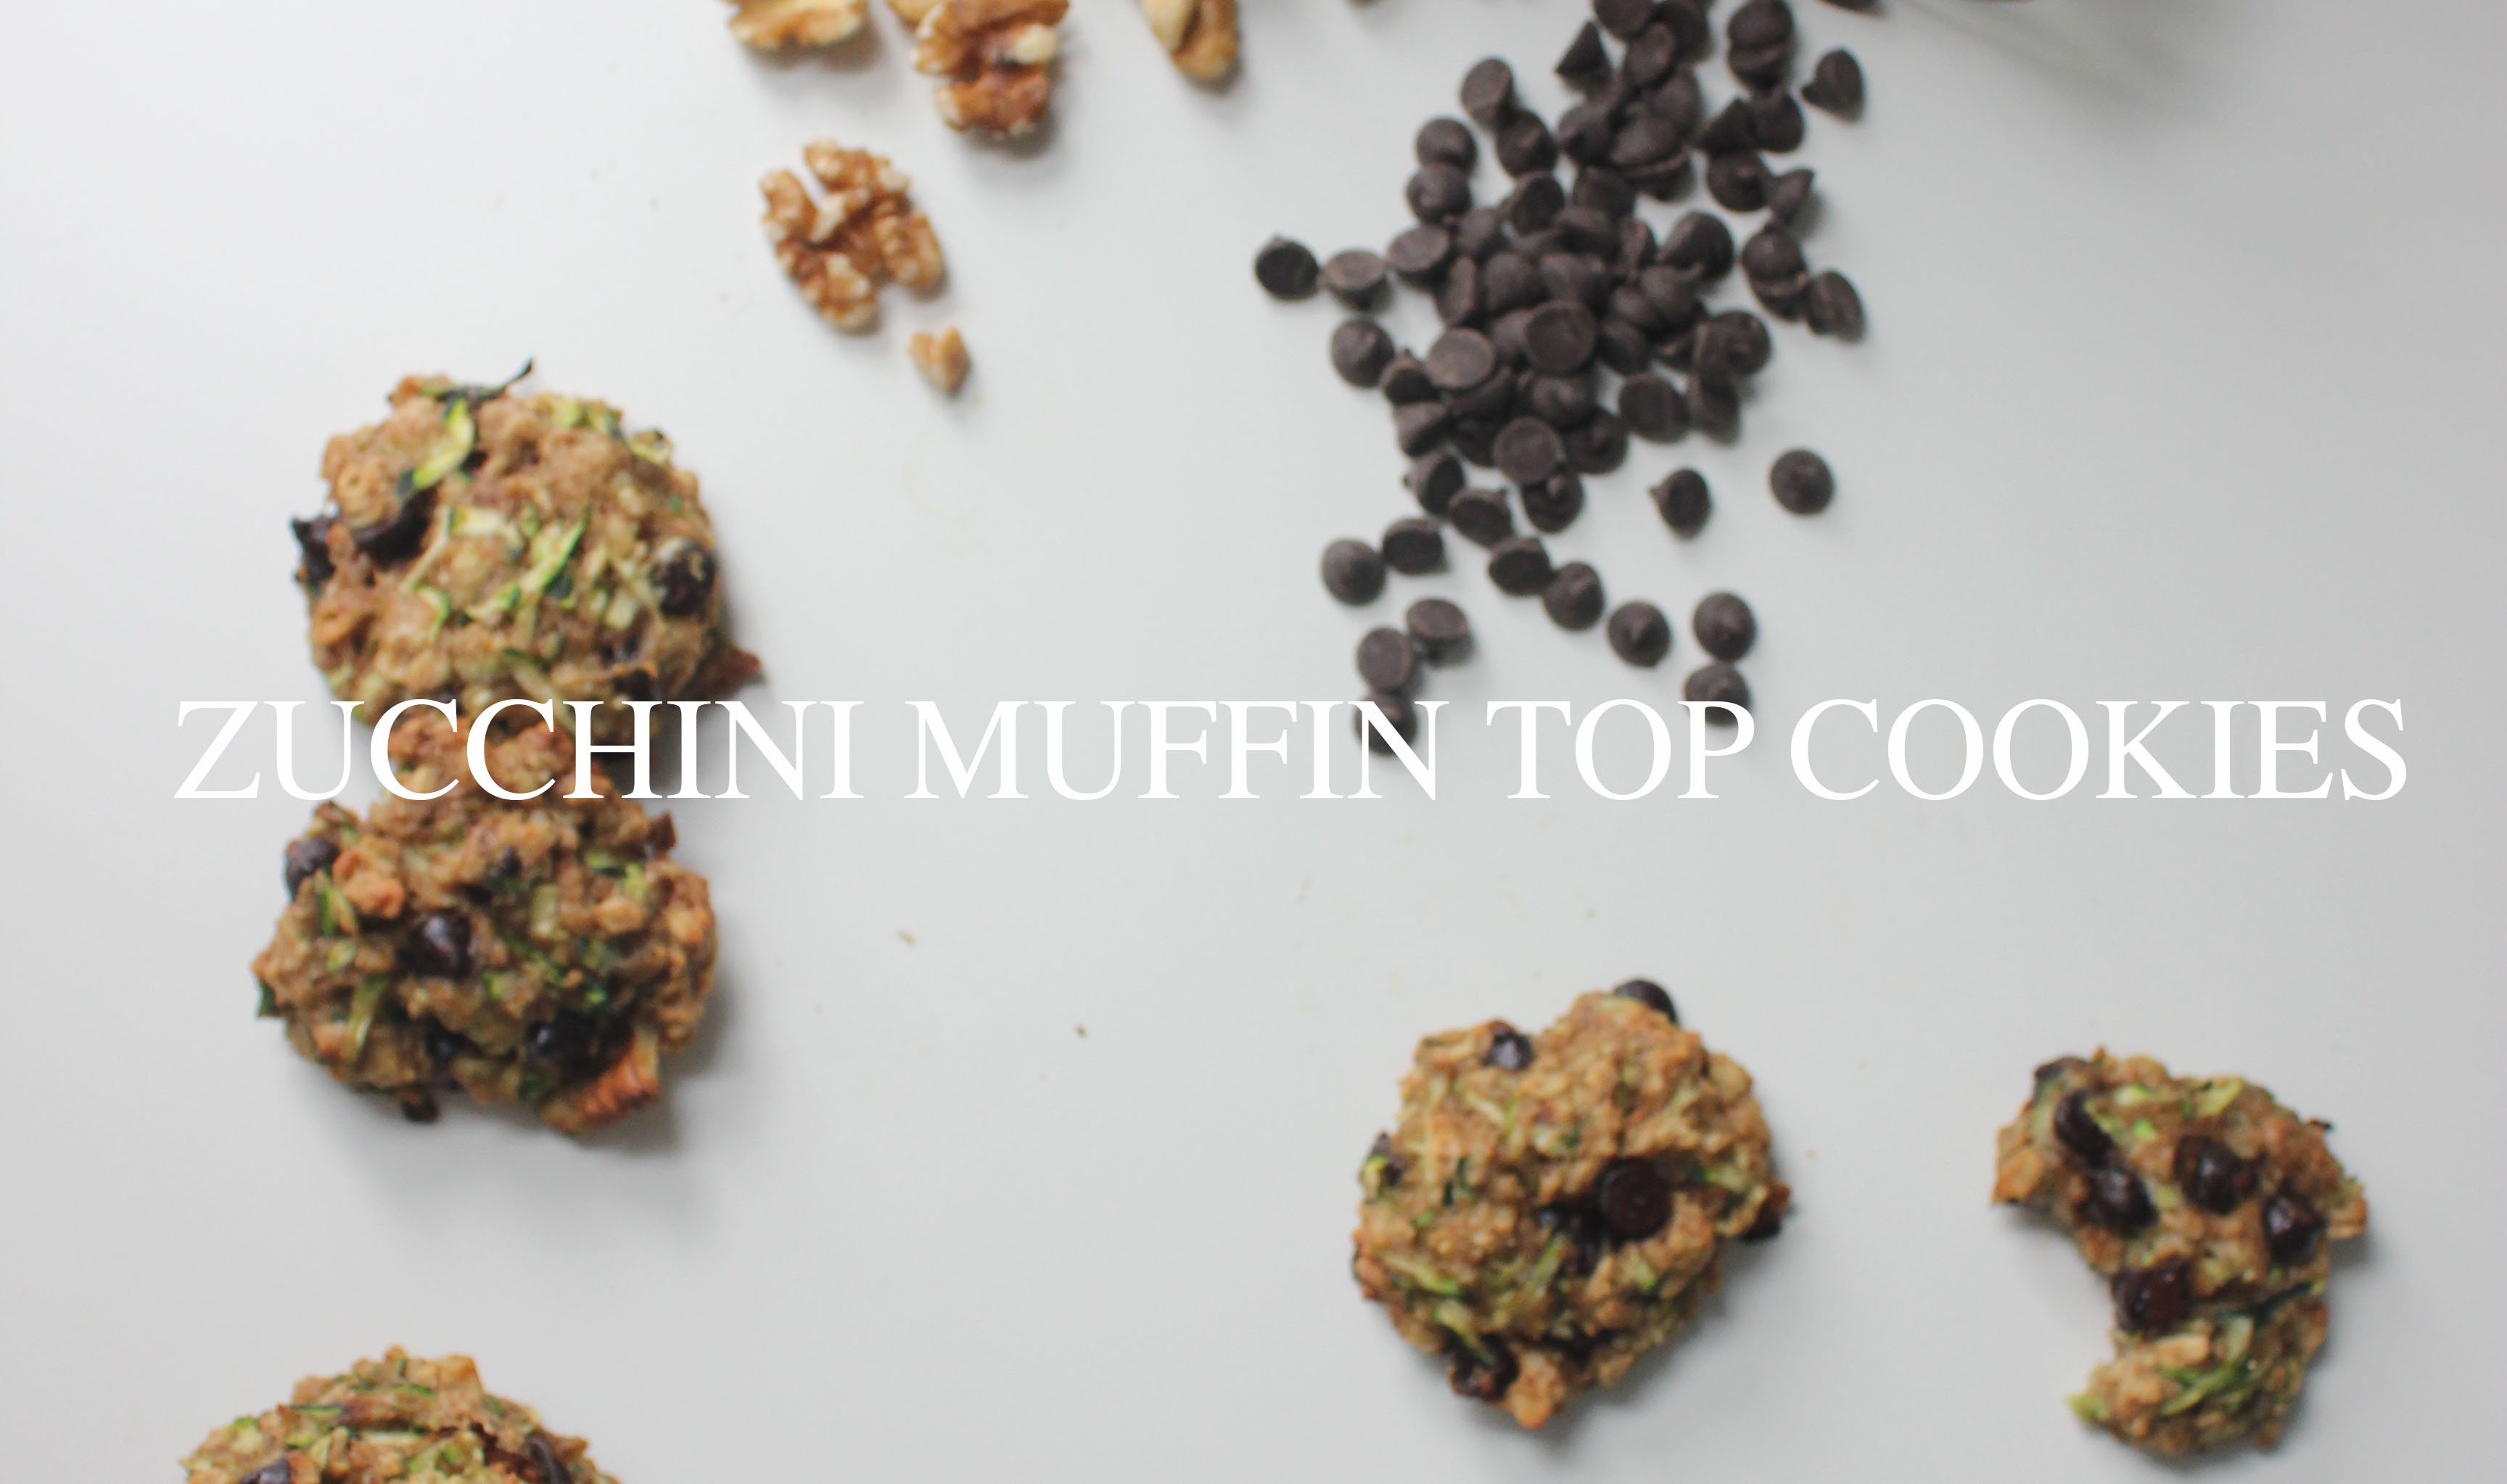 ZUCCHINI MUFFIN TOP COOKIES